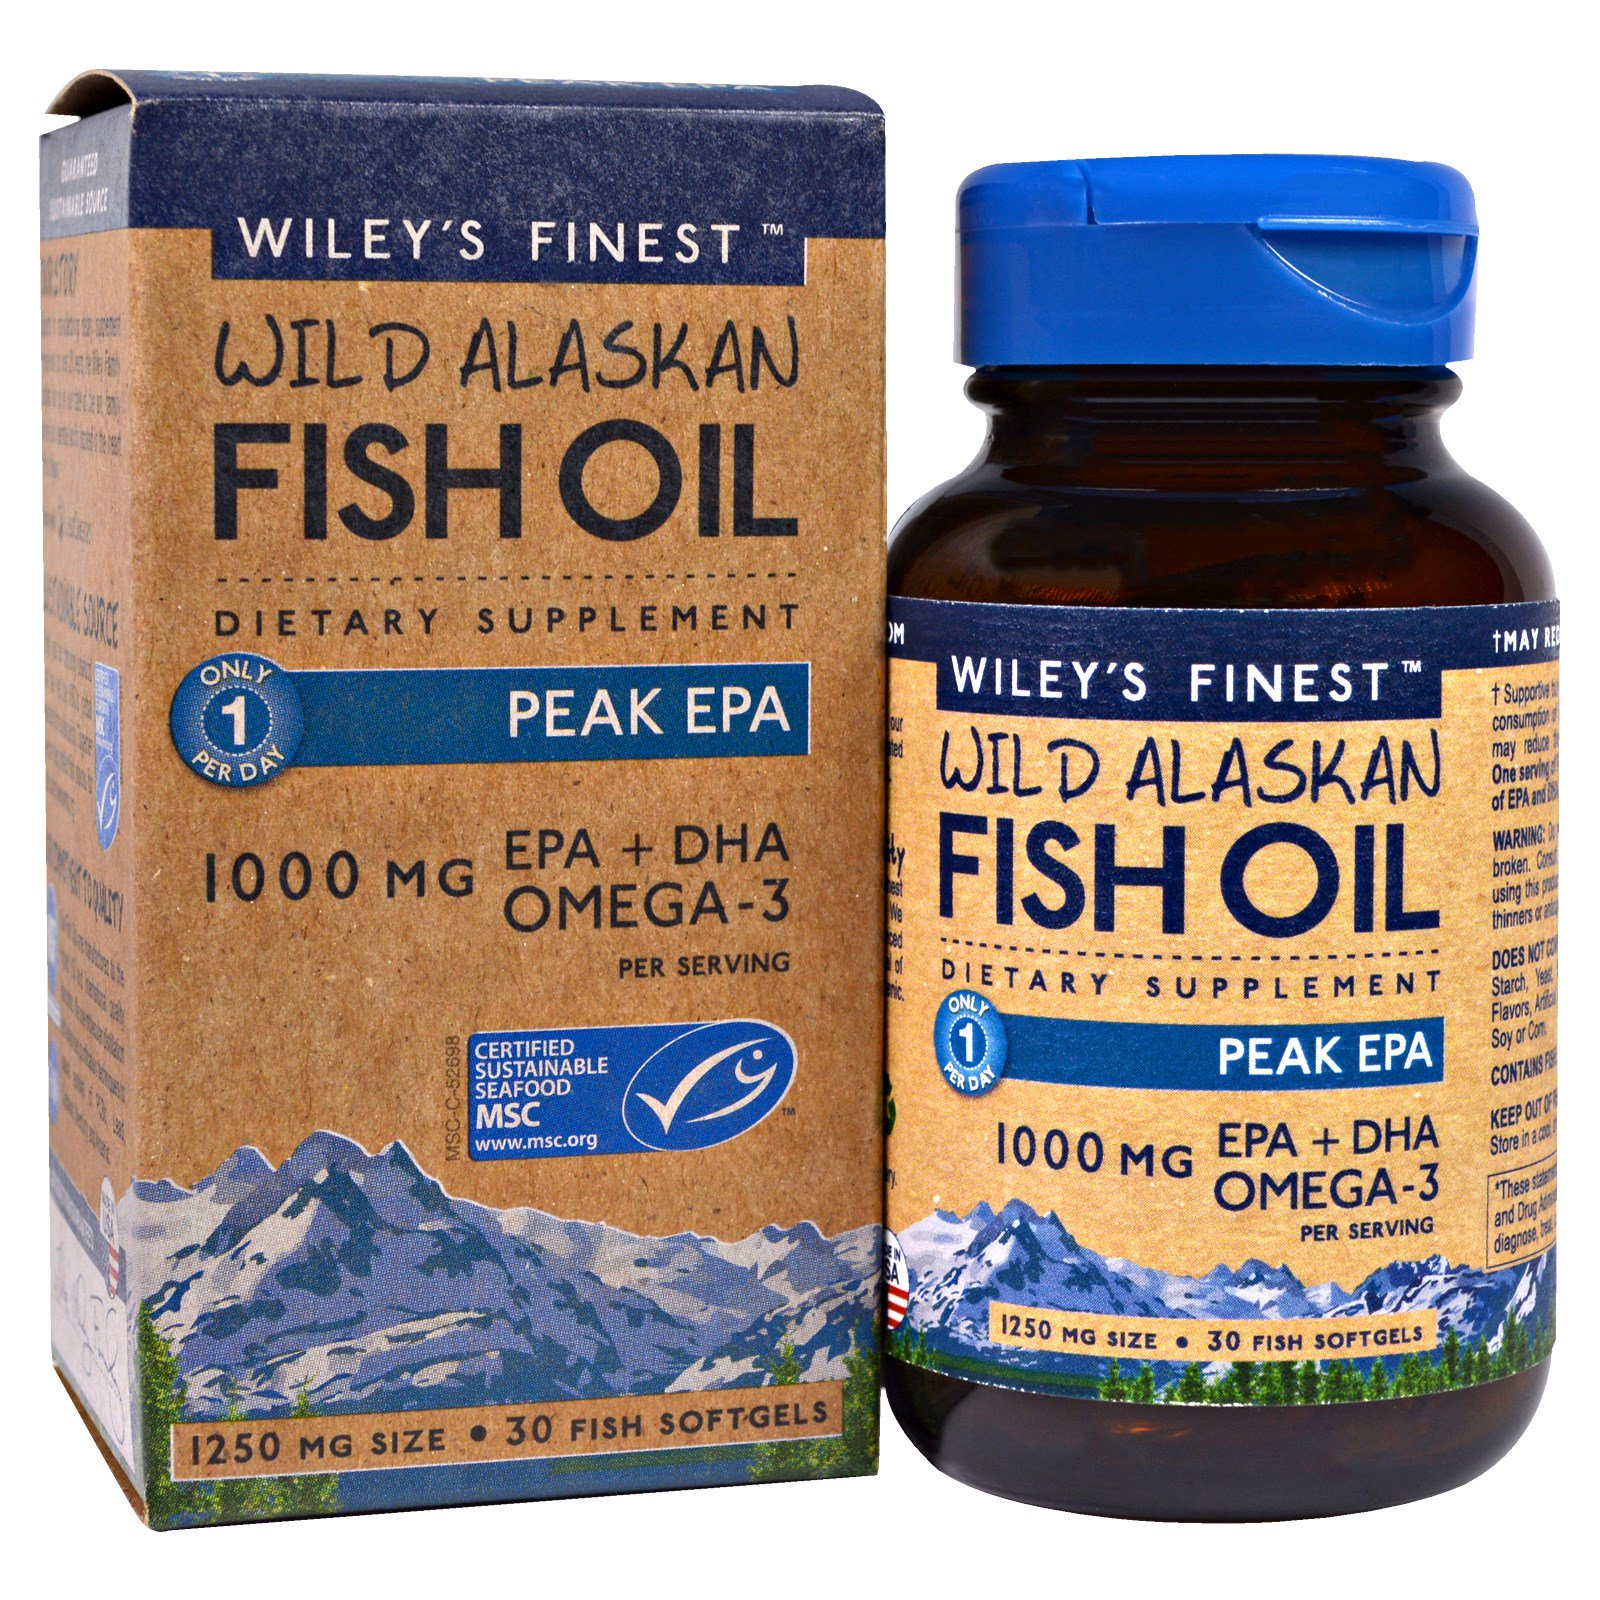 wiley 39 s finest wild alaskan fish oil peak epa 1250 mg